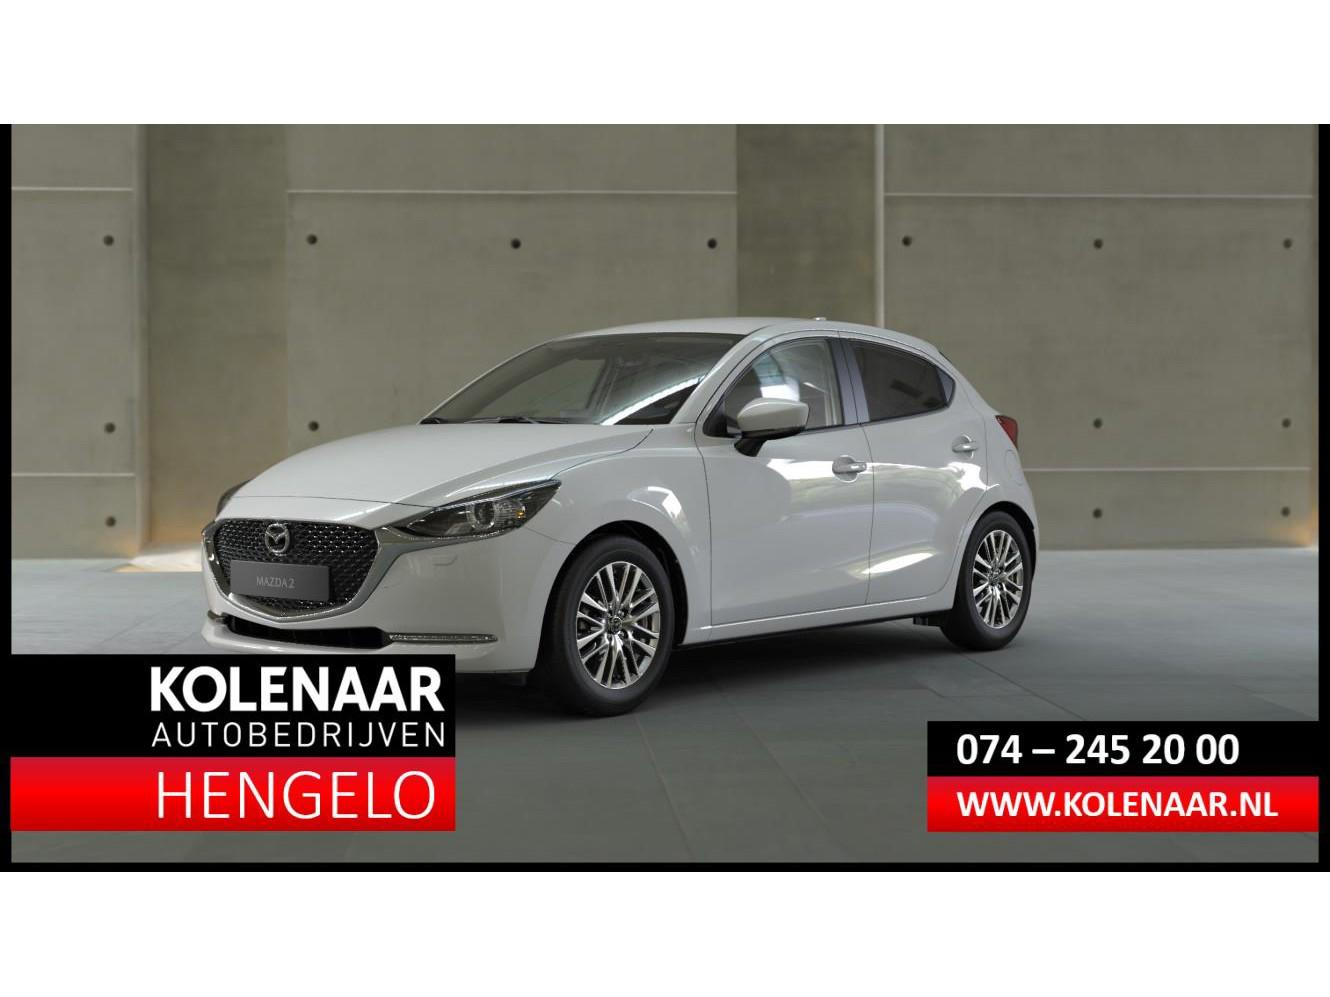 Mazda 2 1.5i style selected eur 2.450 voordeel my 2020 m hybrid apple car